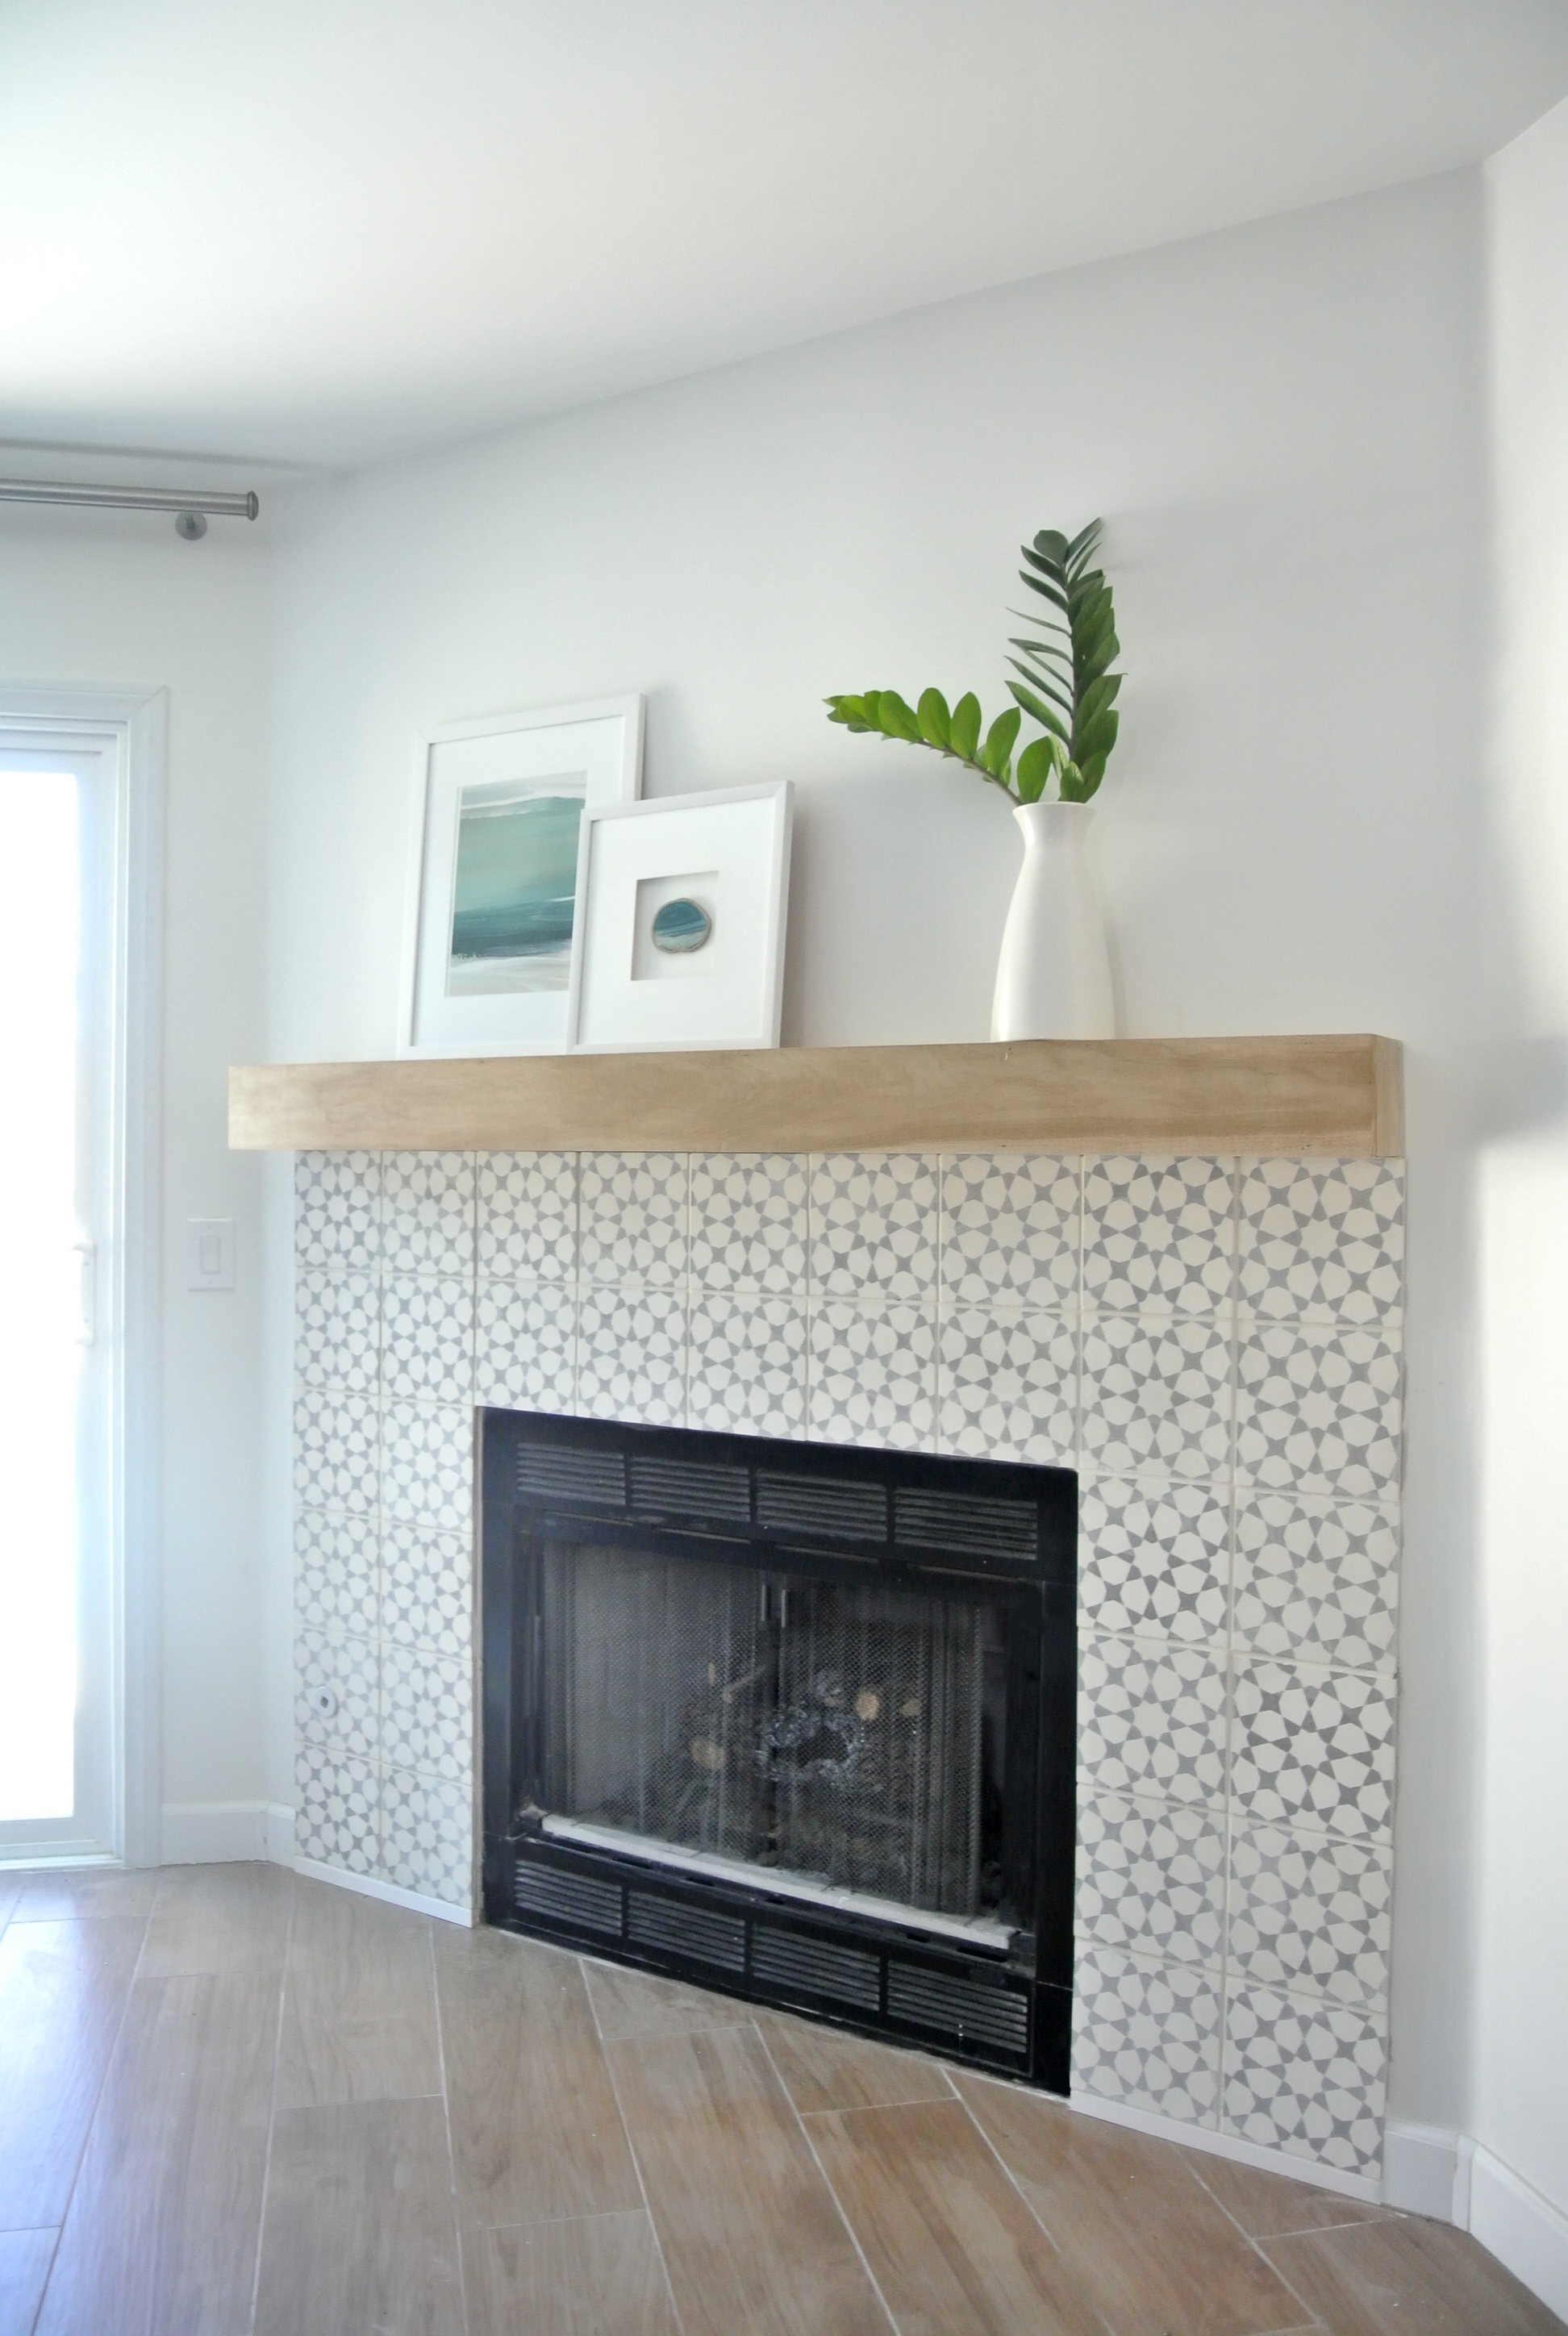 Diy fireplace makeover centsational style for Building a corner fireplace